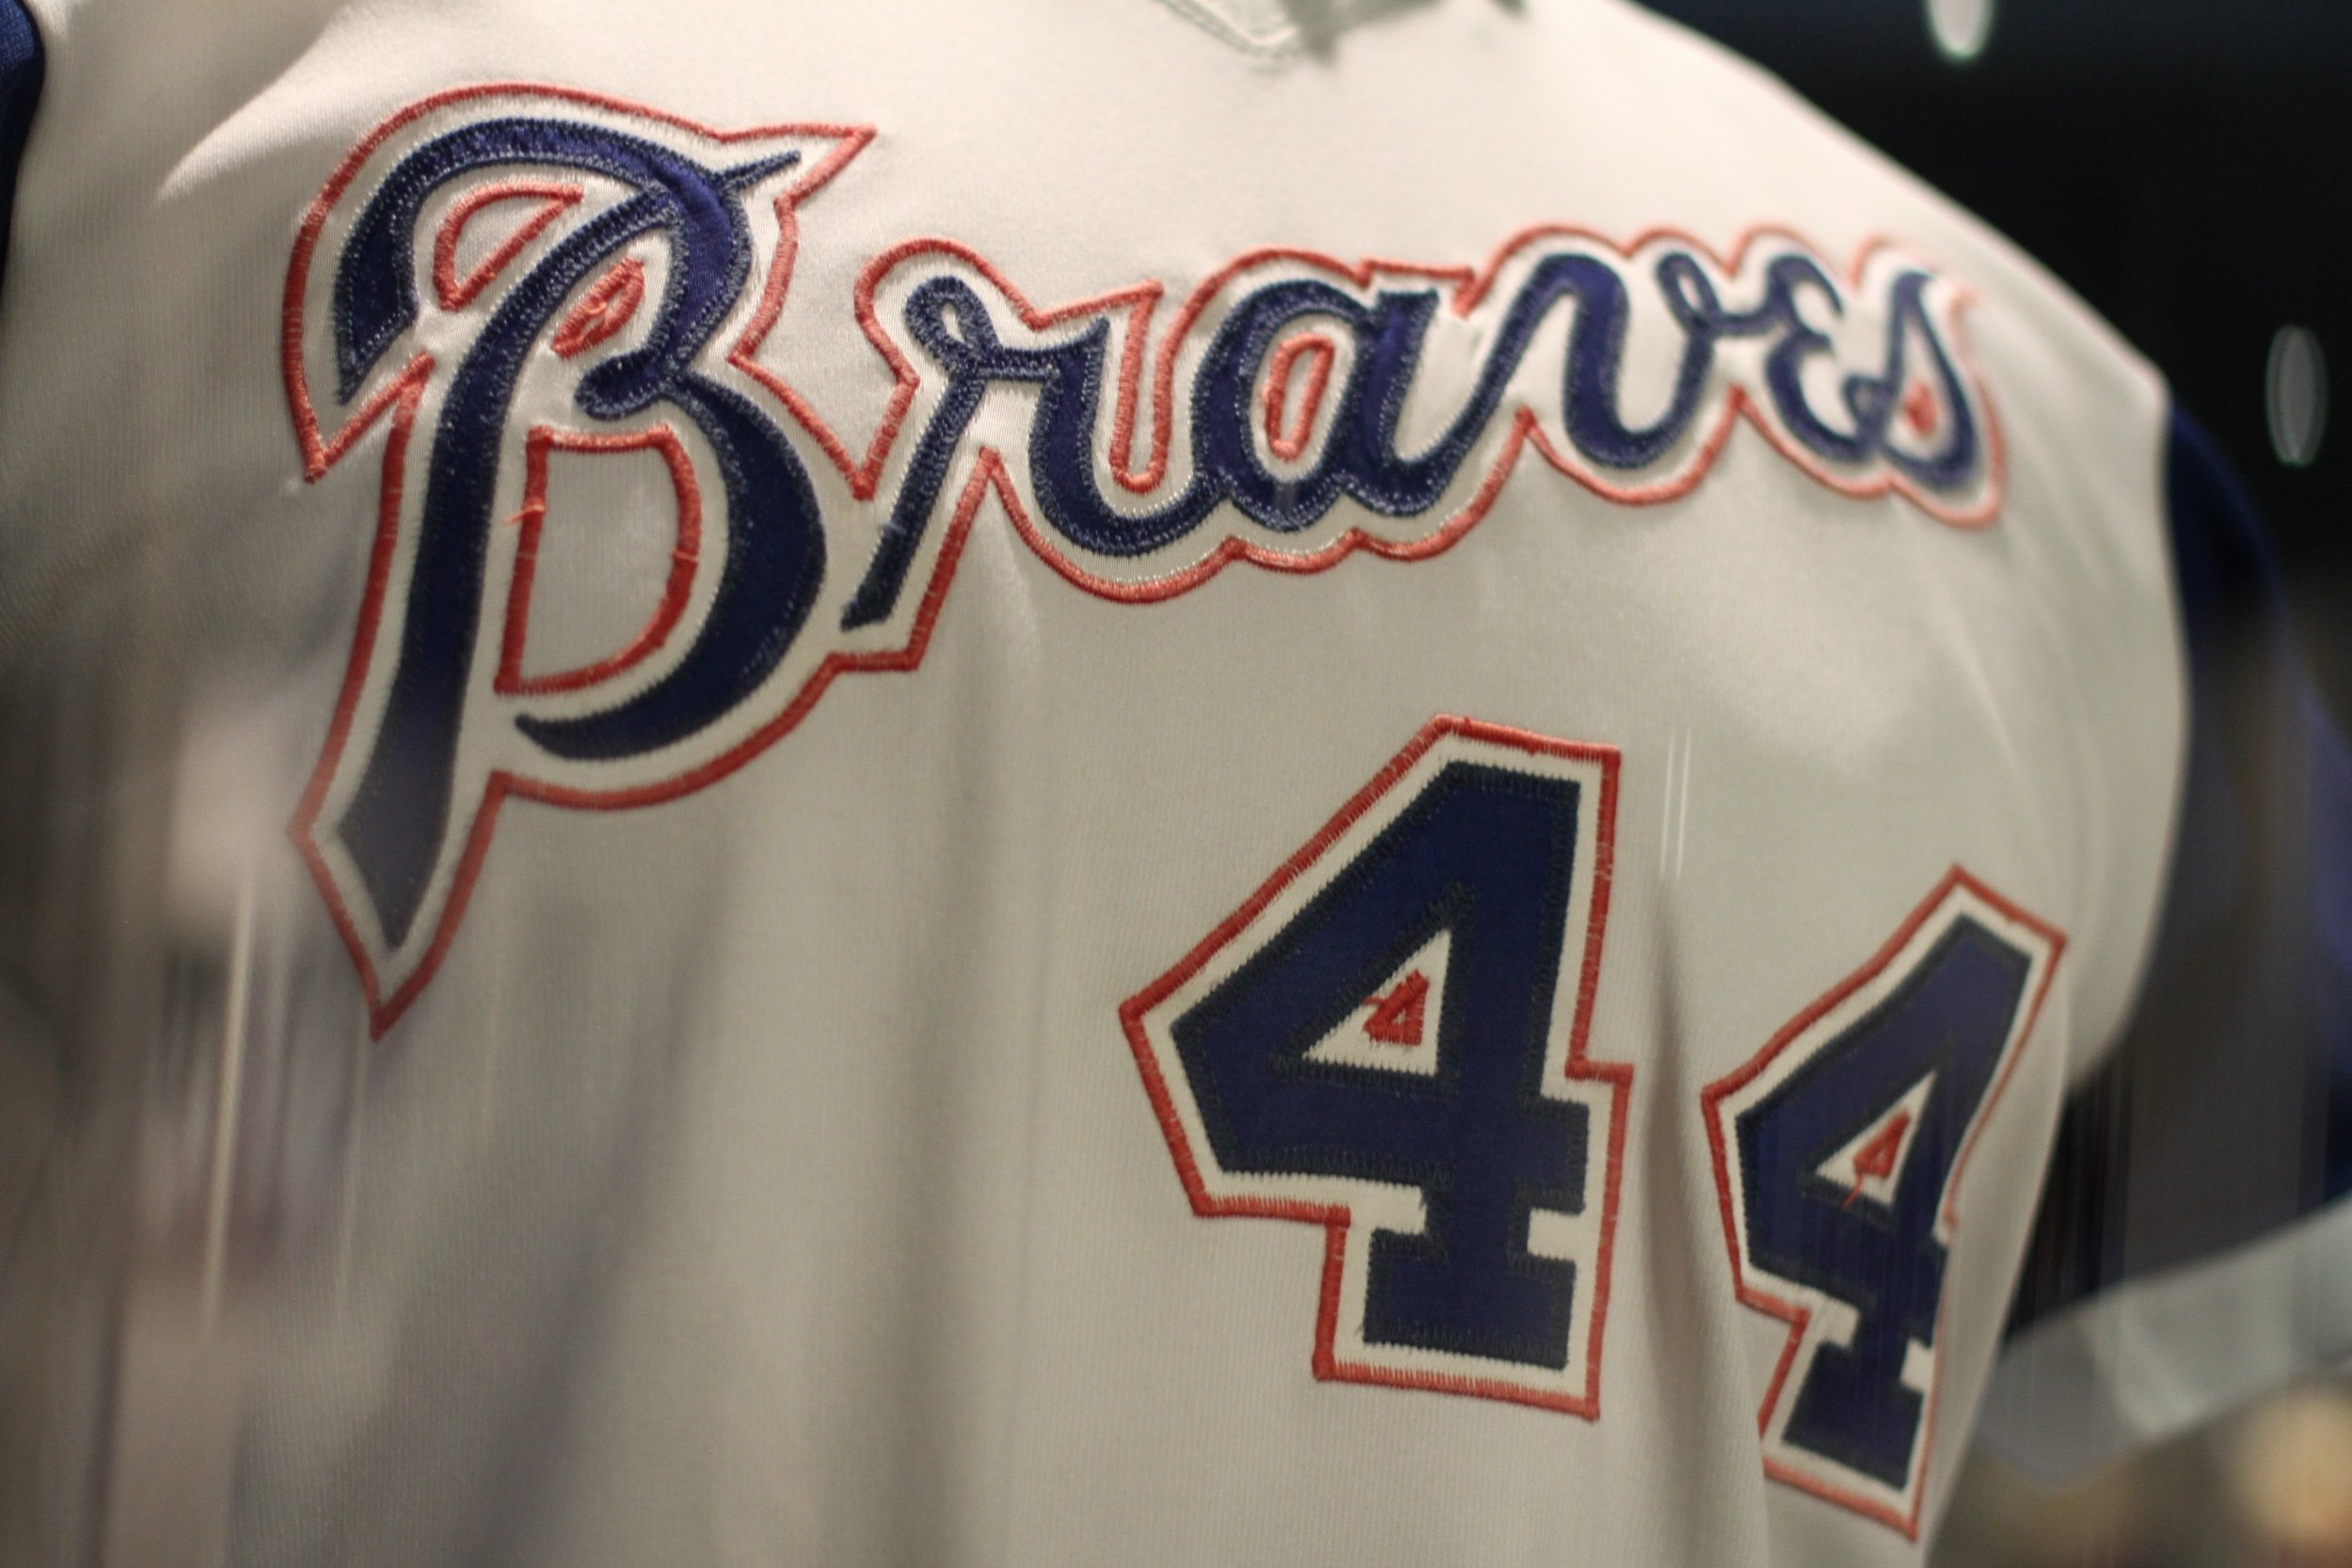 Jersey worn by Hank Aaron when he passed Babe Ruth with 715 career home runs in 1974.